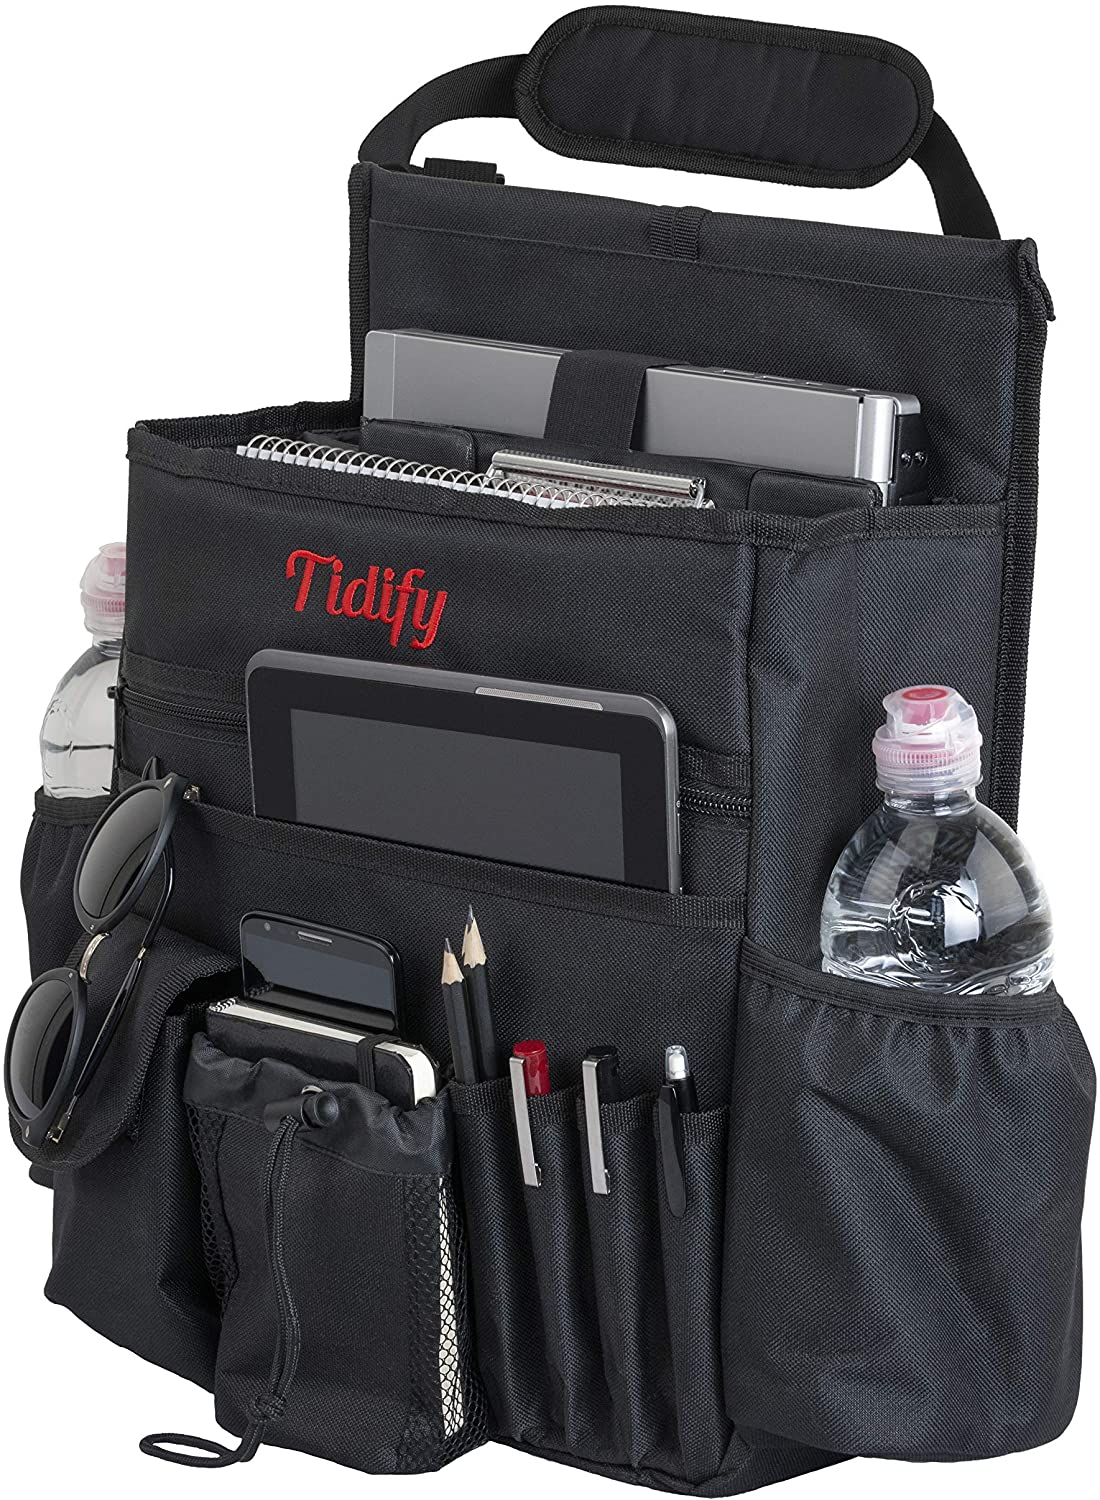 A Seat Organizer as a Truck Driver Gift